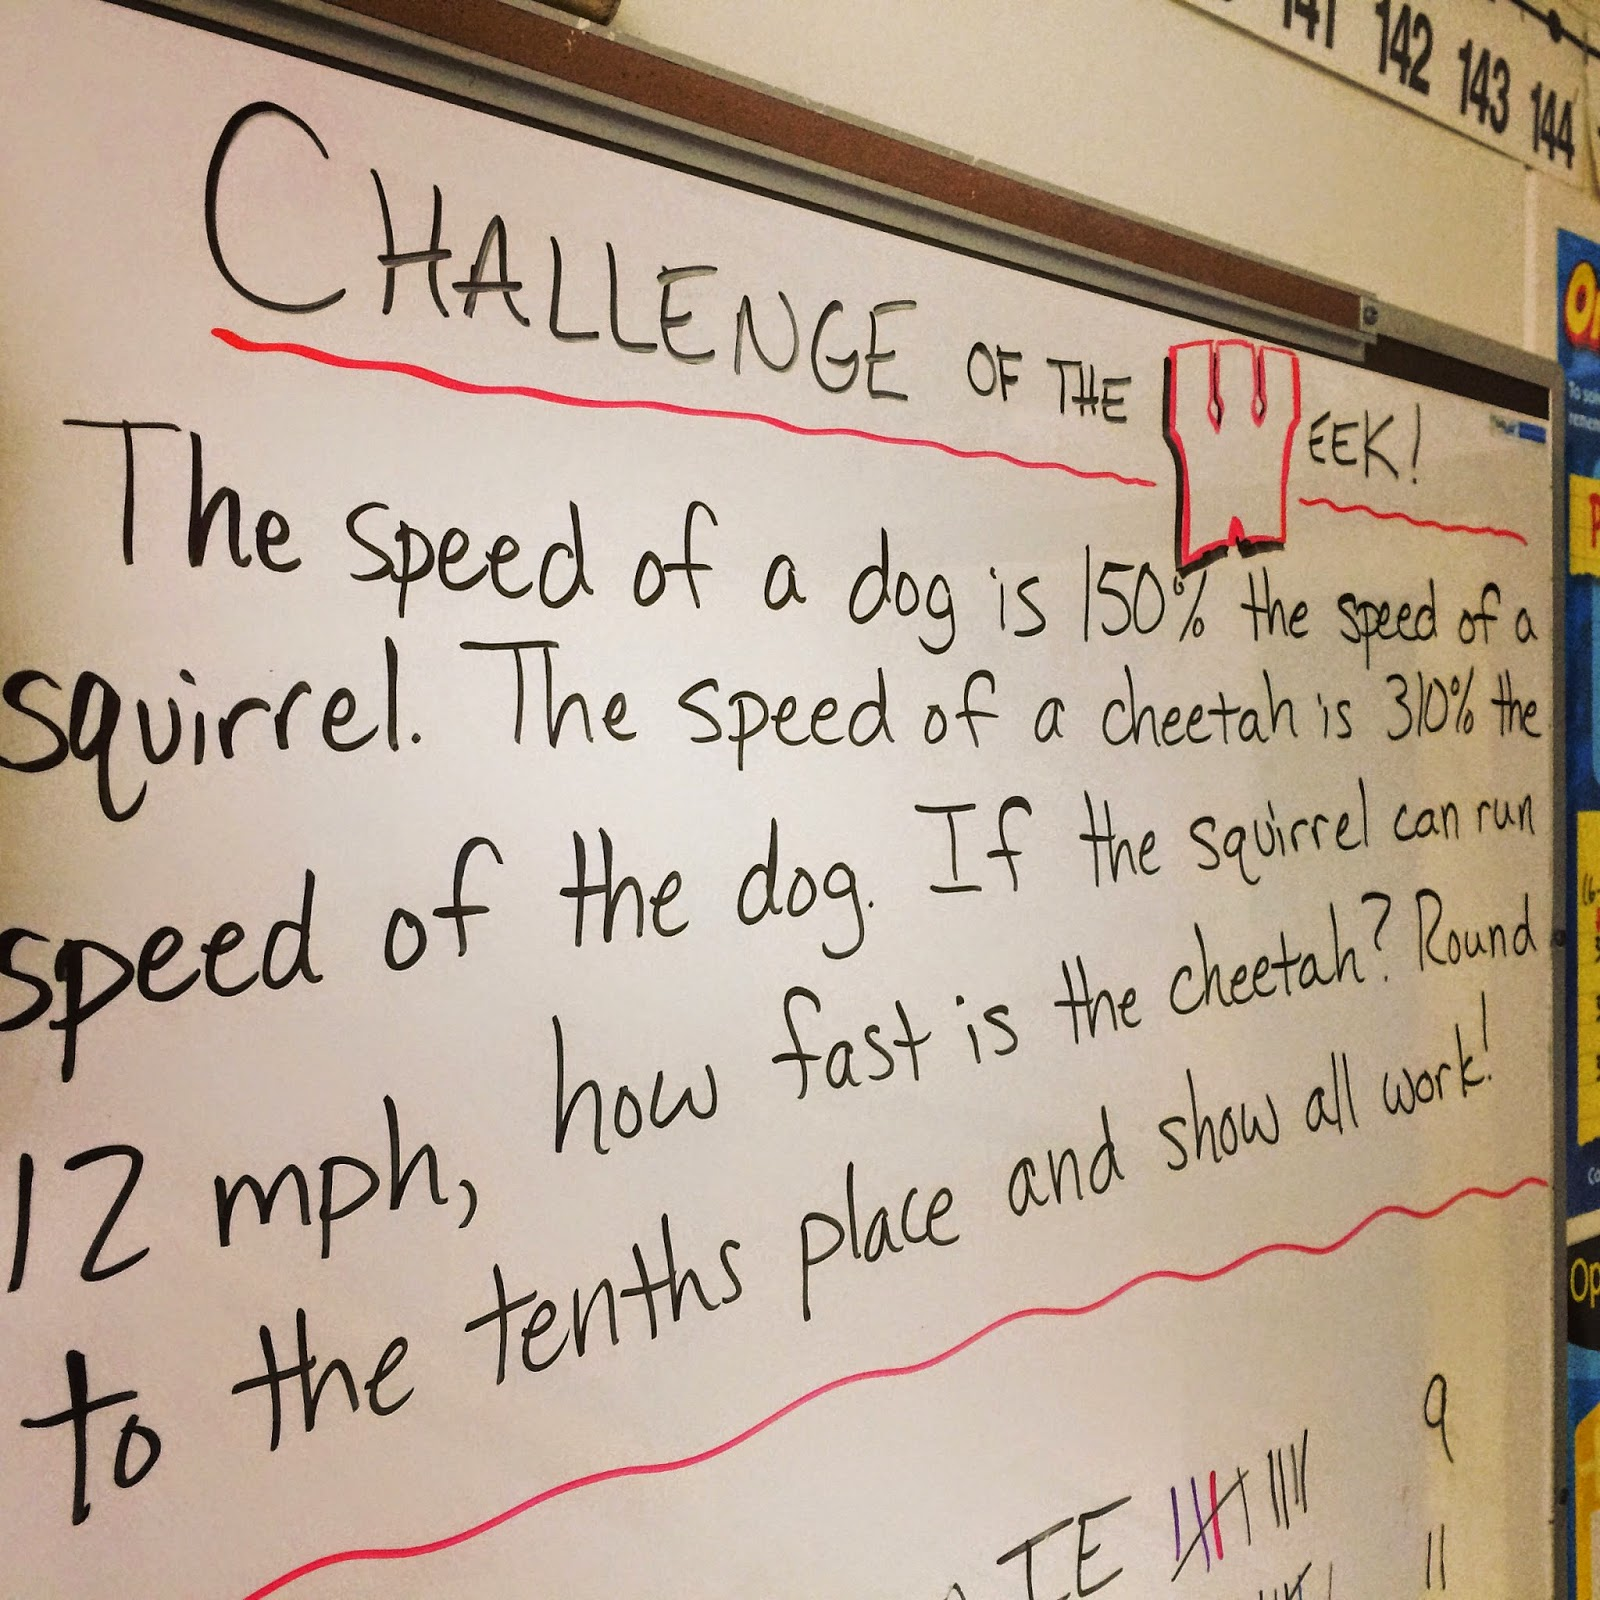 middle school math man challenge of the week another problem of the week from our percents fractions and decimals unit this one was from later in the chapter when we learned how to the percent